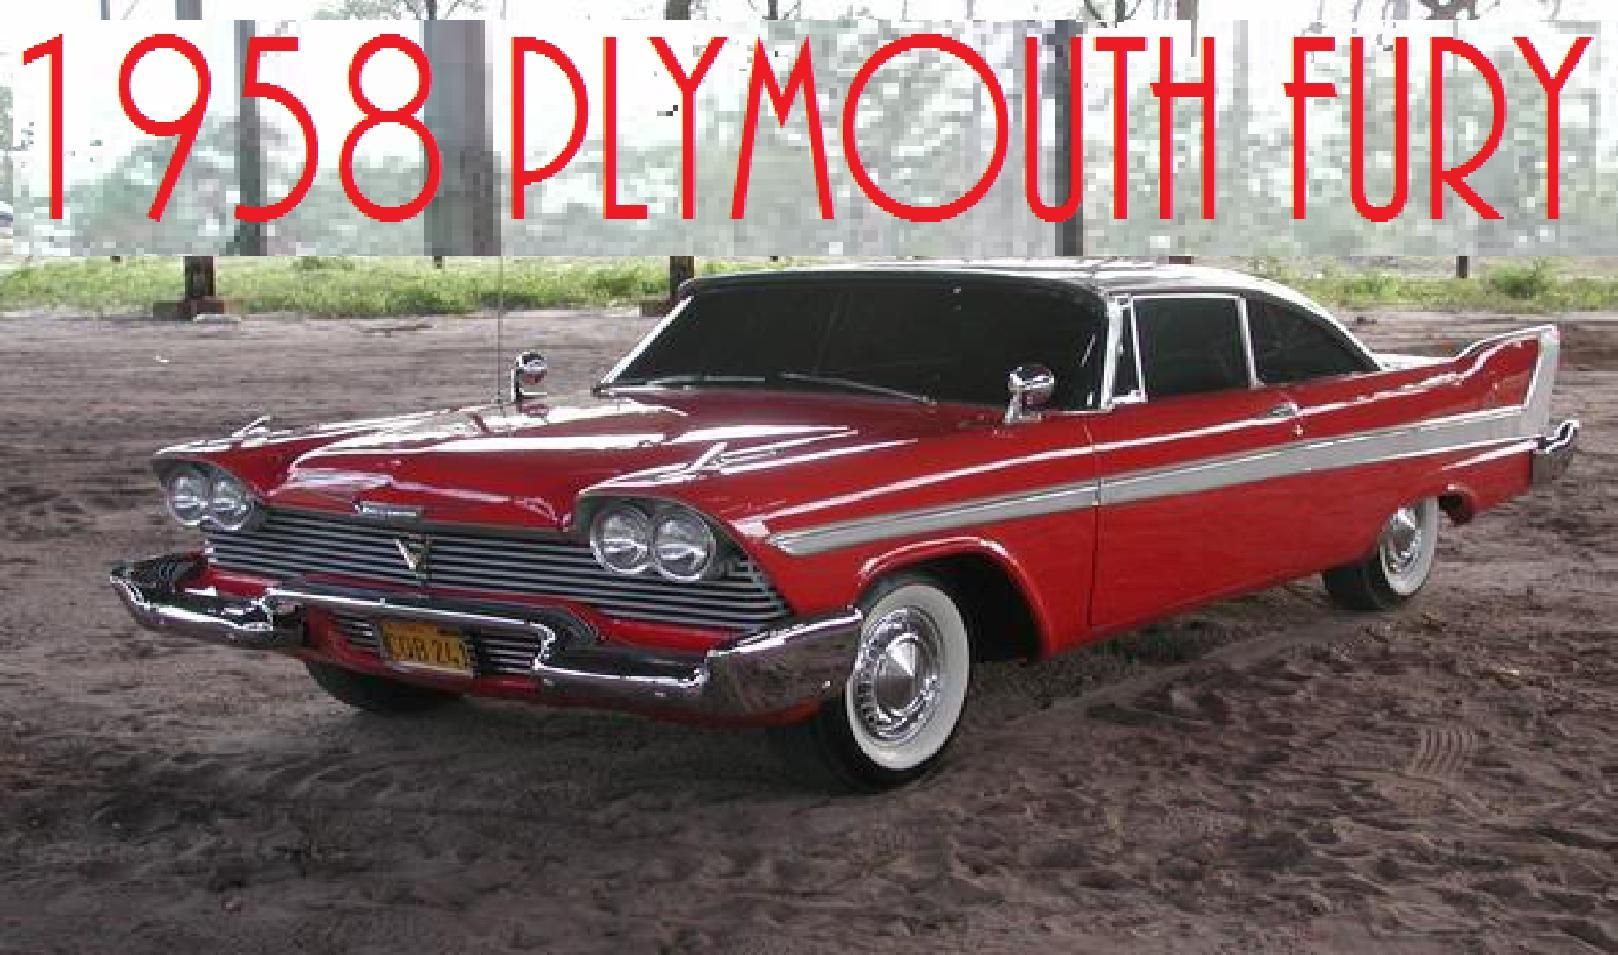 The 58 Plymouth Fury, car number two on my wish list. Christine ...